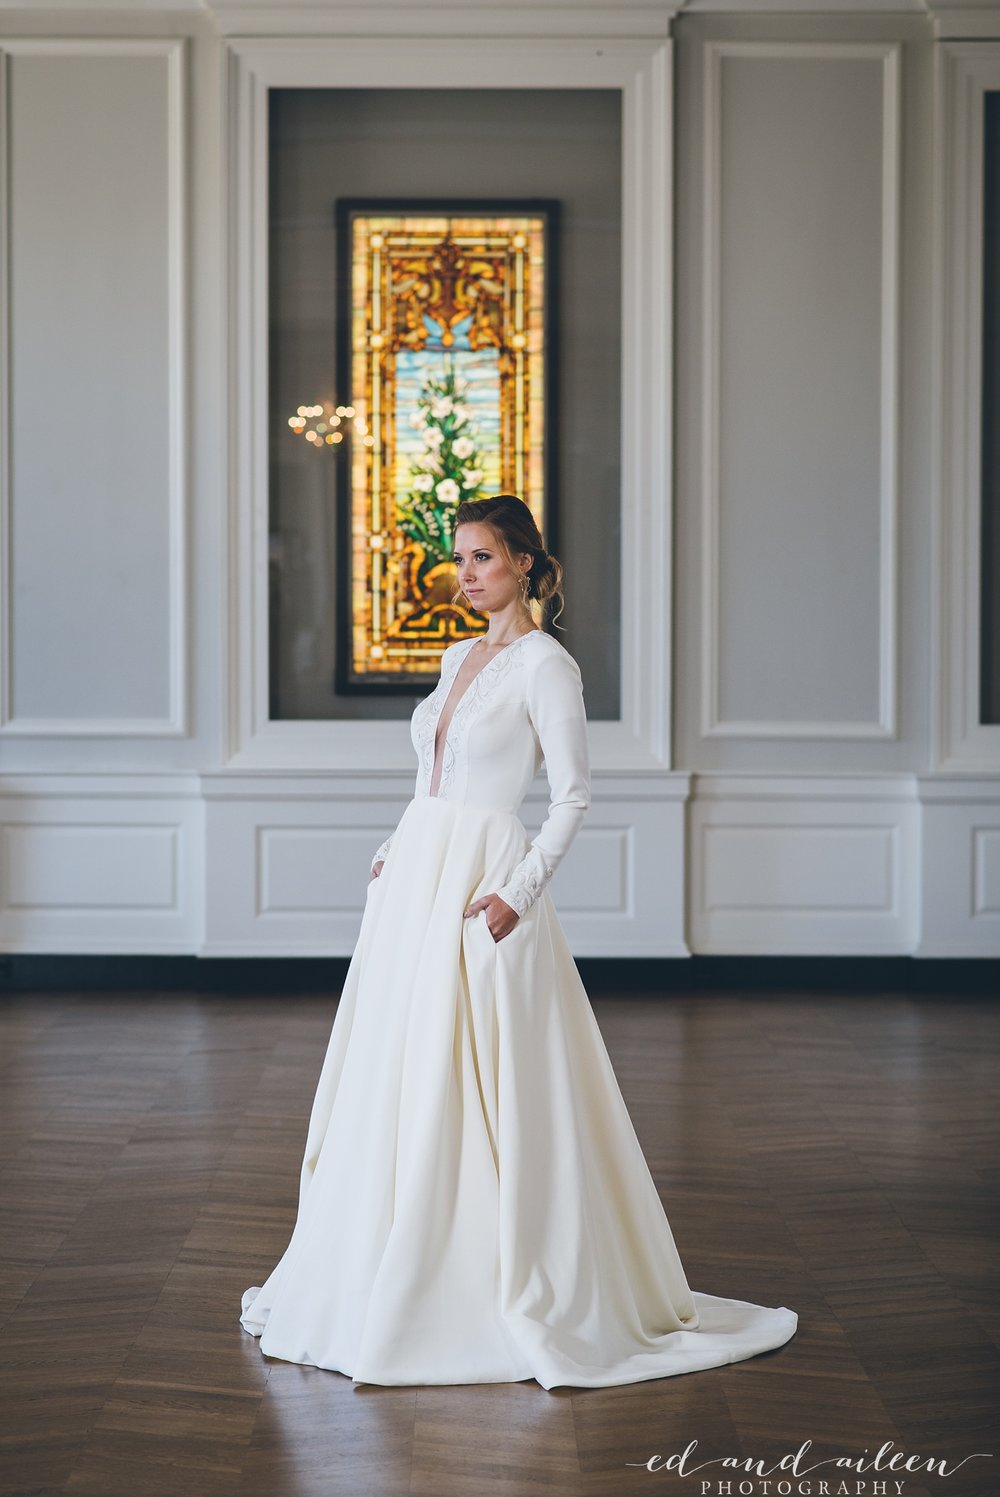 Long Sleeve Low Cut Sexy Wedding Gown with Pockets Chicago Wedding Ed and Aileen Photography